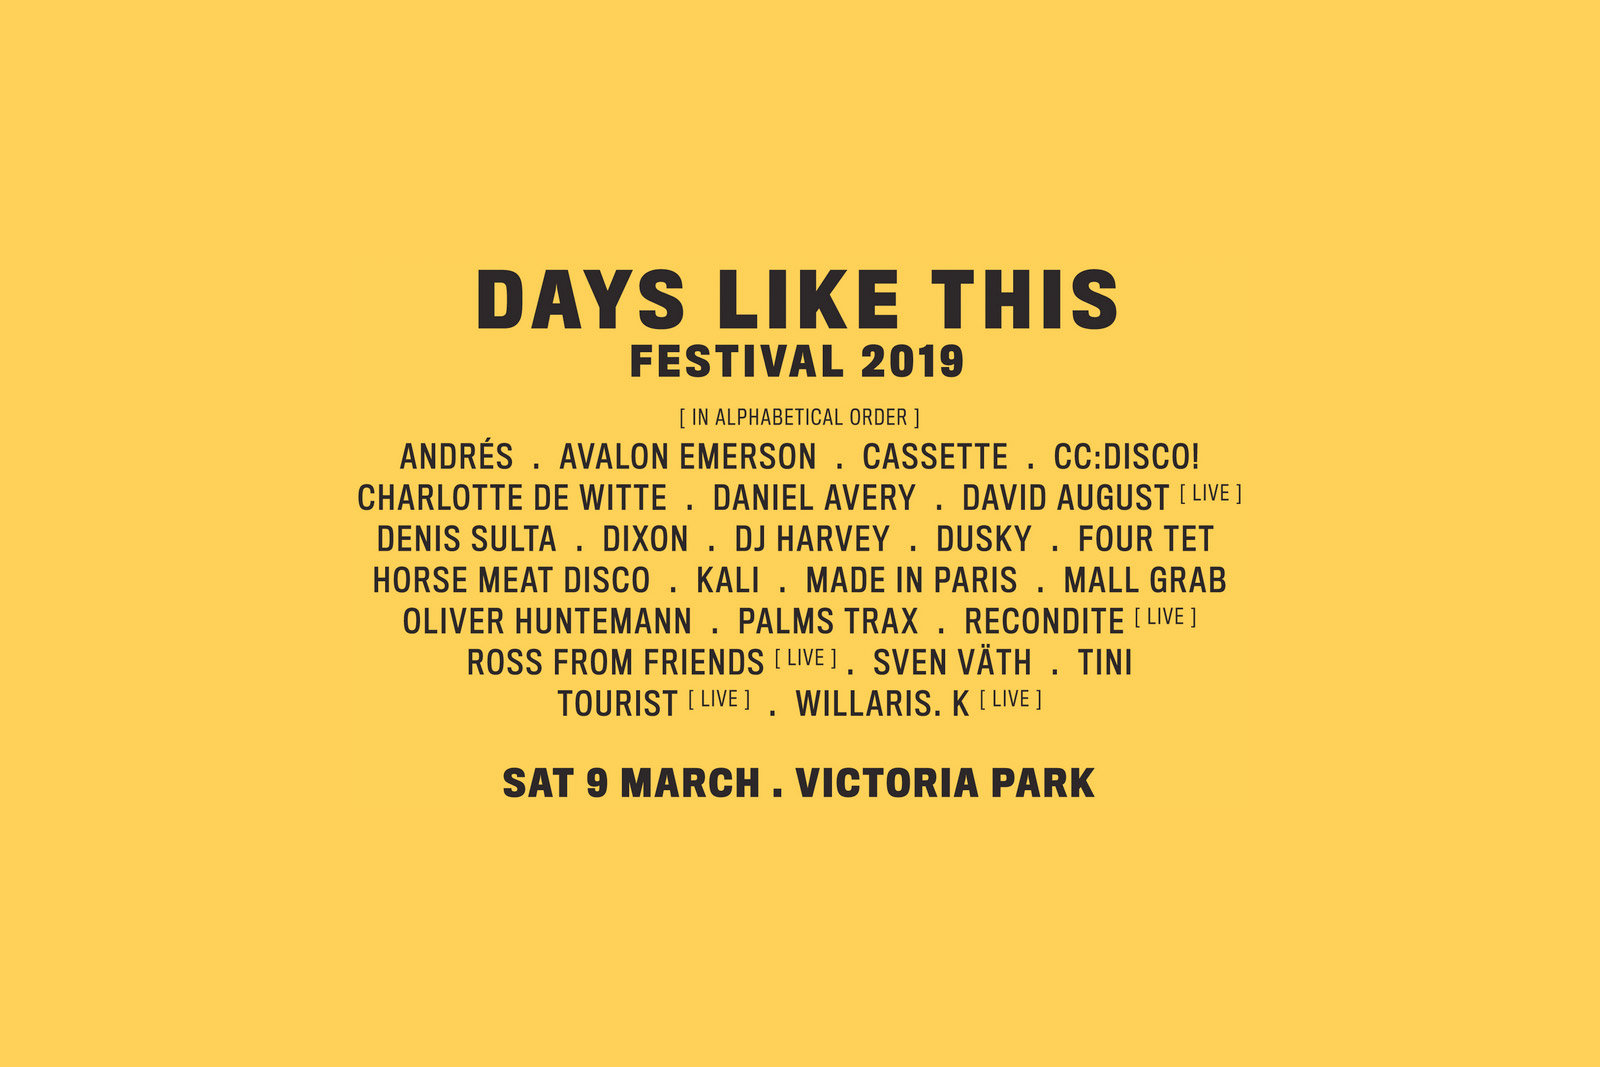 days-like-this-festival-2019-lineup-oz-edm